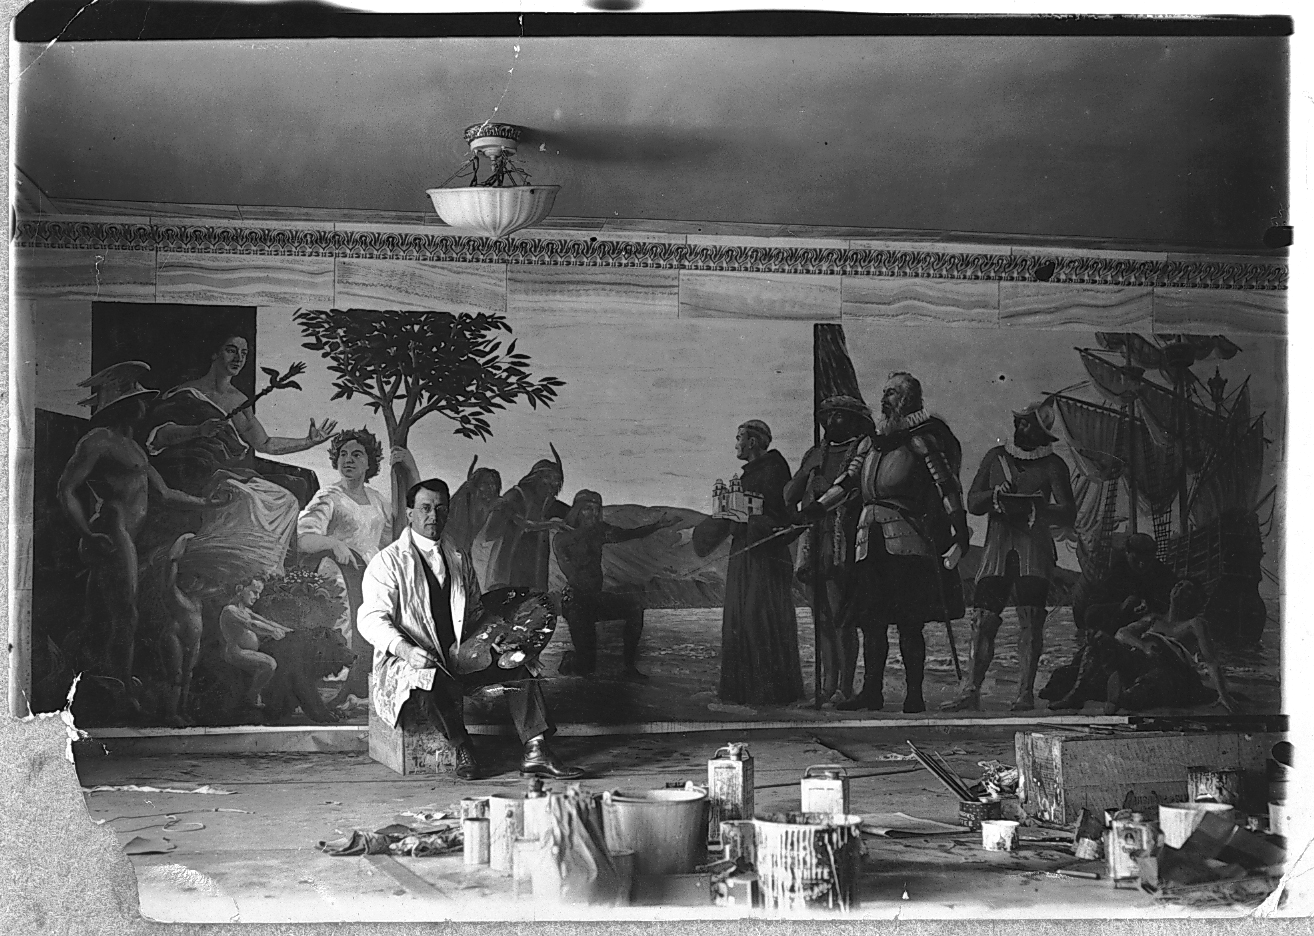 This publicity photograph shows Fausto Tasca completing work on a mural for the Farmers' and Merchants' Bank. The bank was located in Long Beach, California.